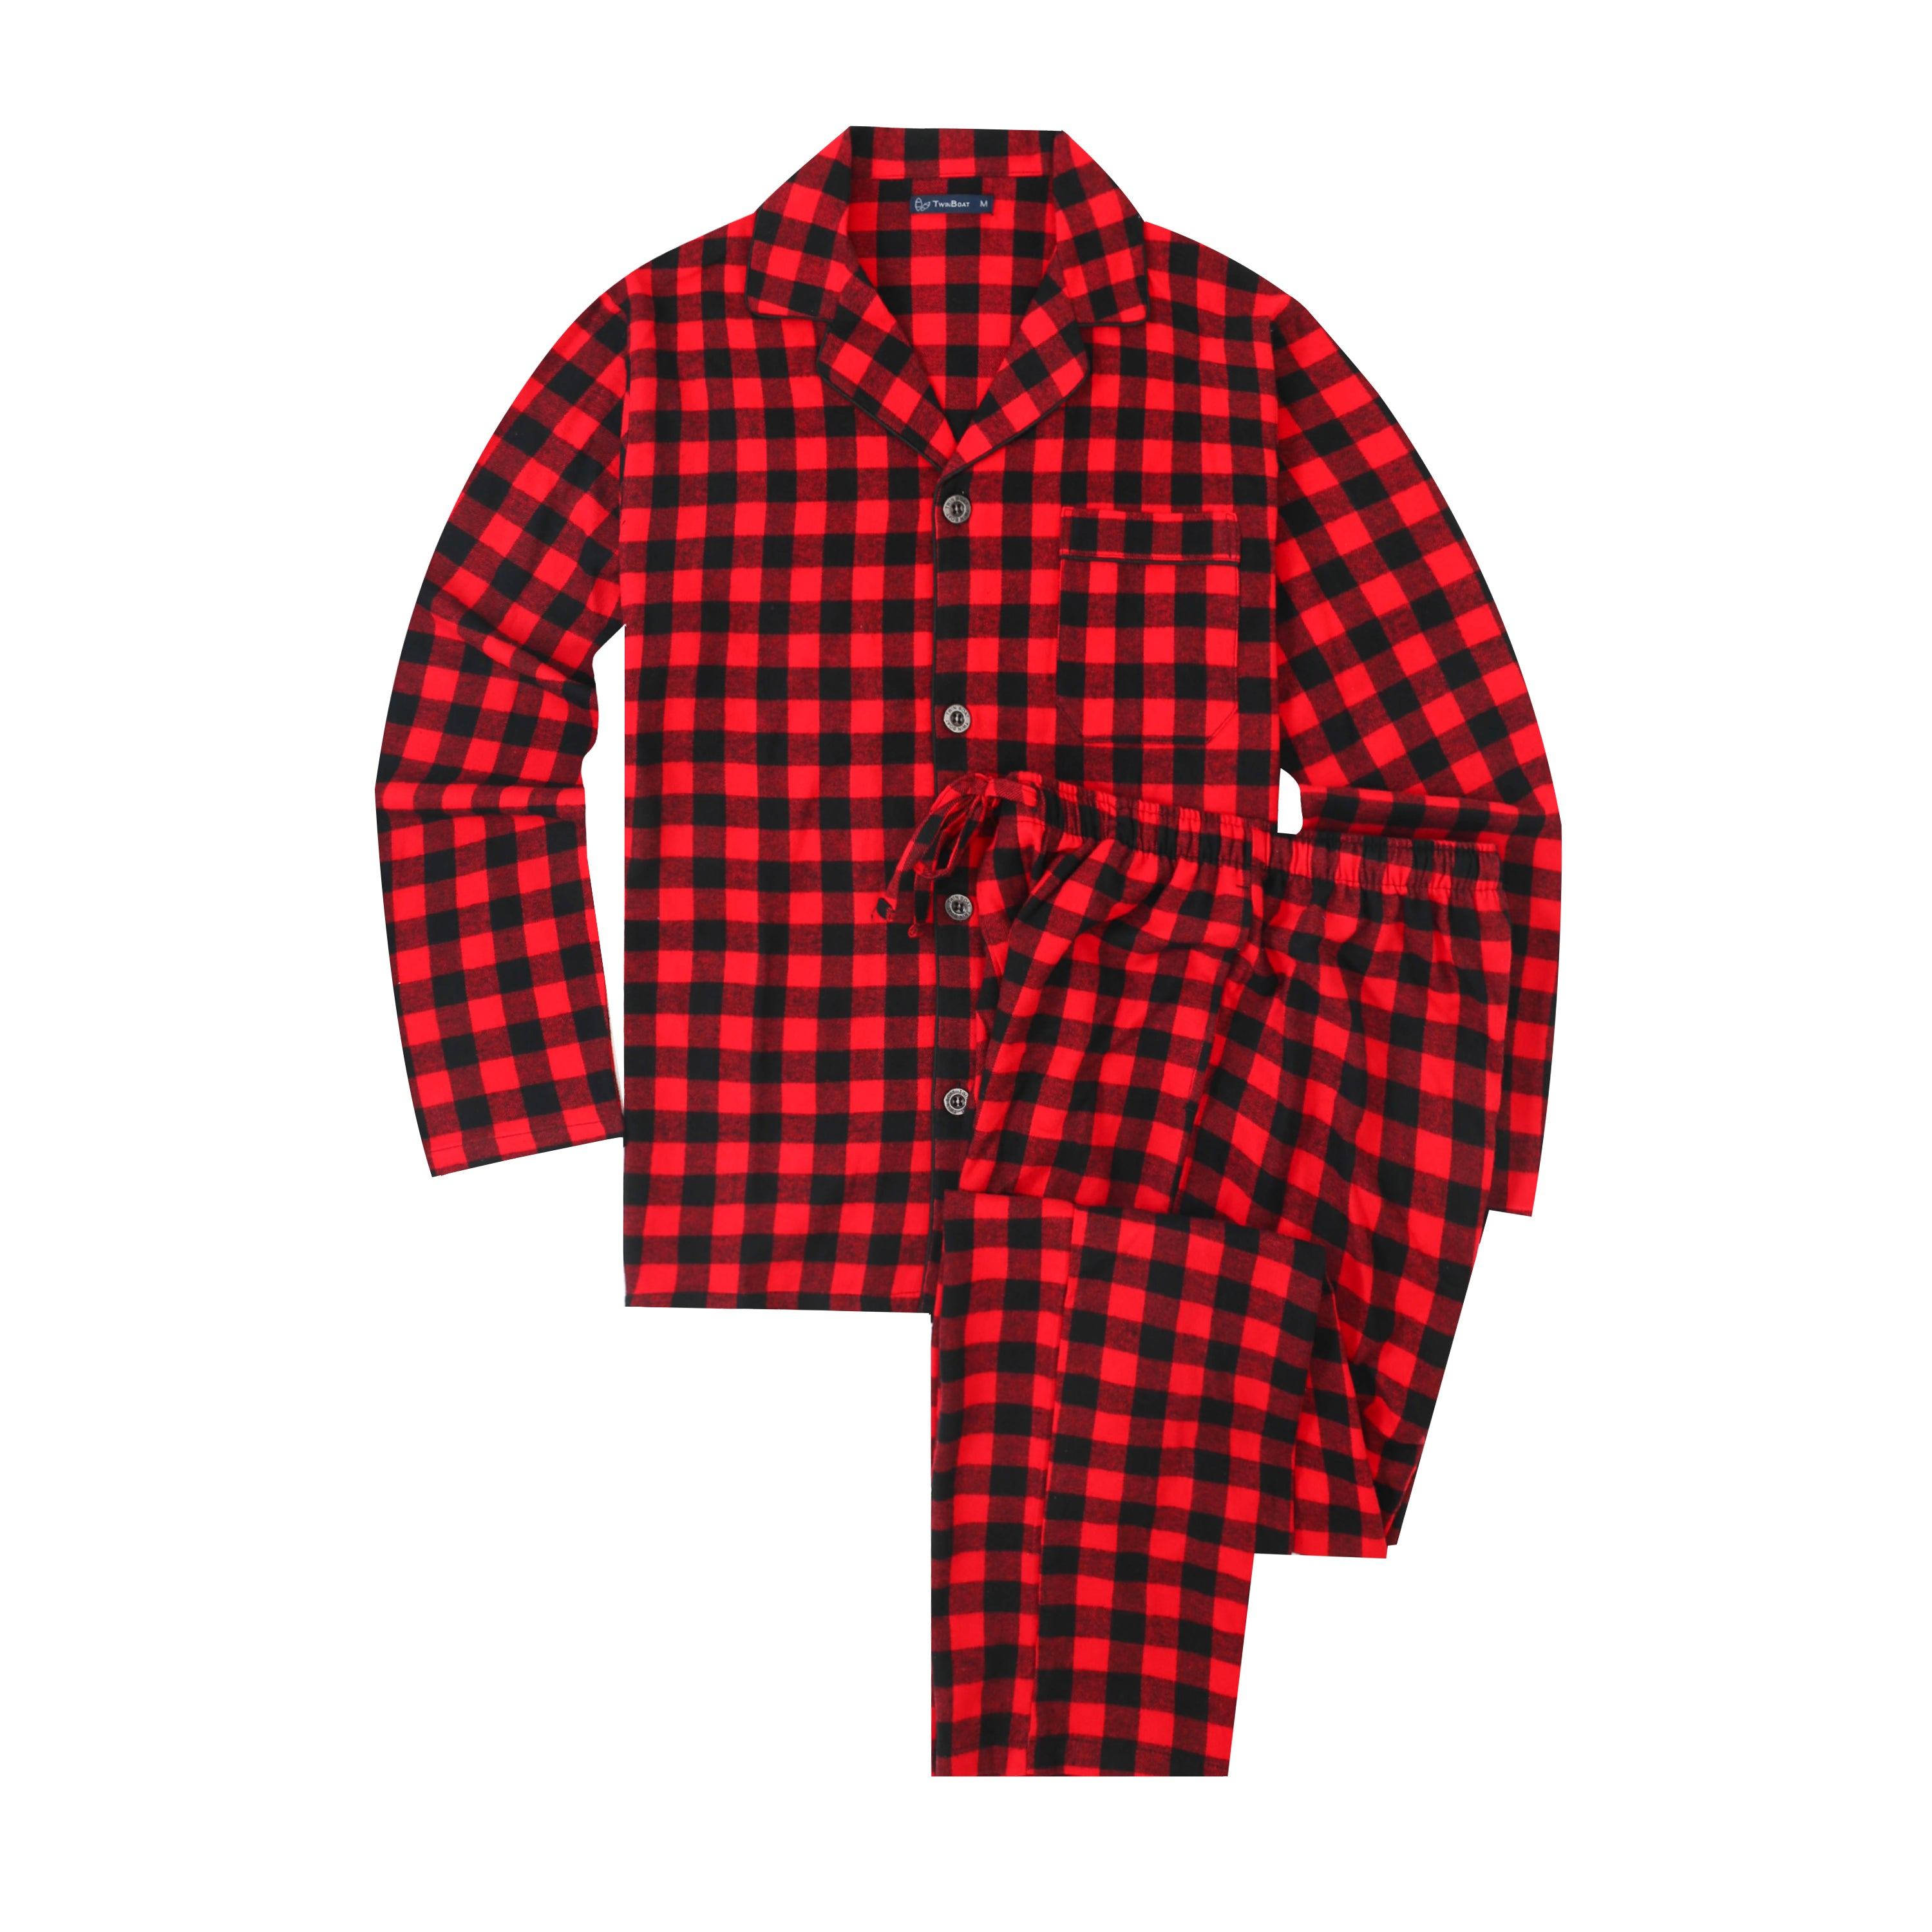 Mens Pajamas Set - 100% Cotton Flannel Pajamas for Men